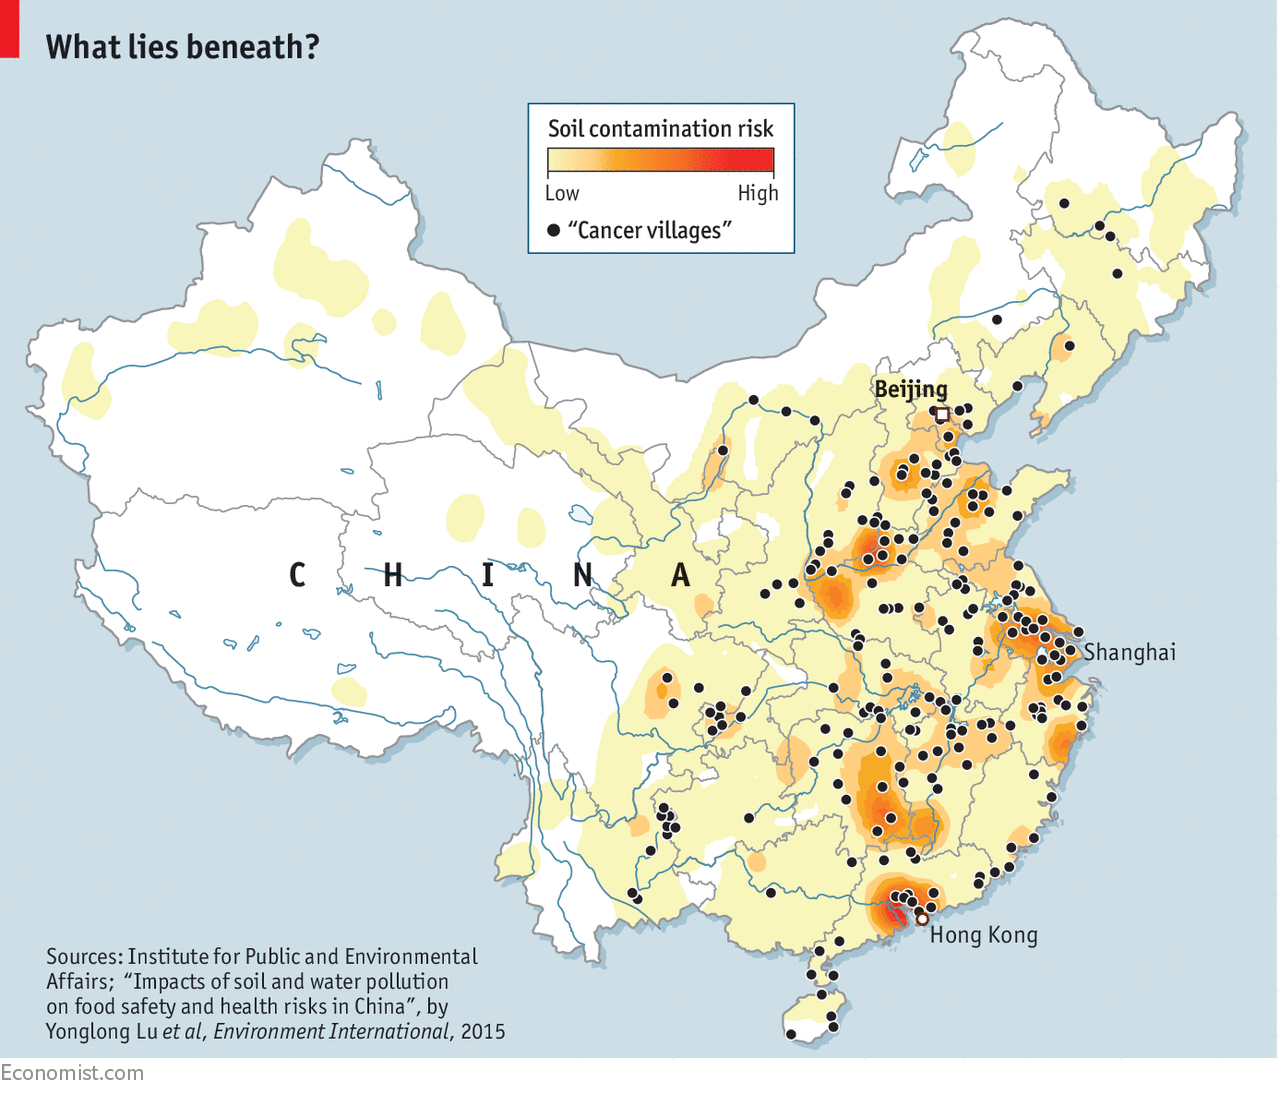 China S Soil Contamination Is So Great That It Cannot Adopt Such A Course See Map The Country Is Unusual In That It Not Only Has Many Brownfield Sites